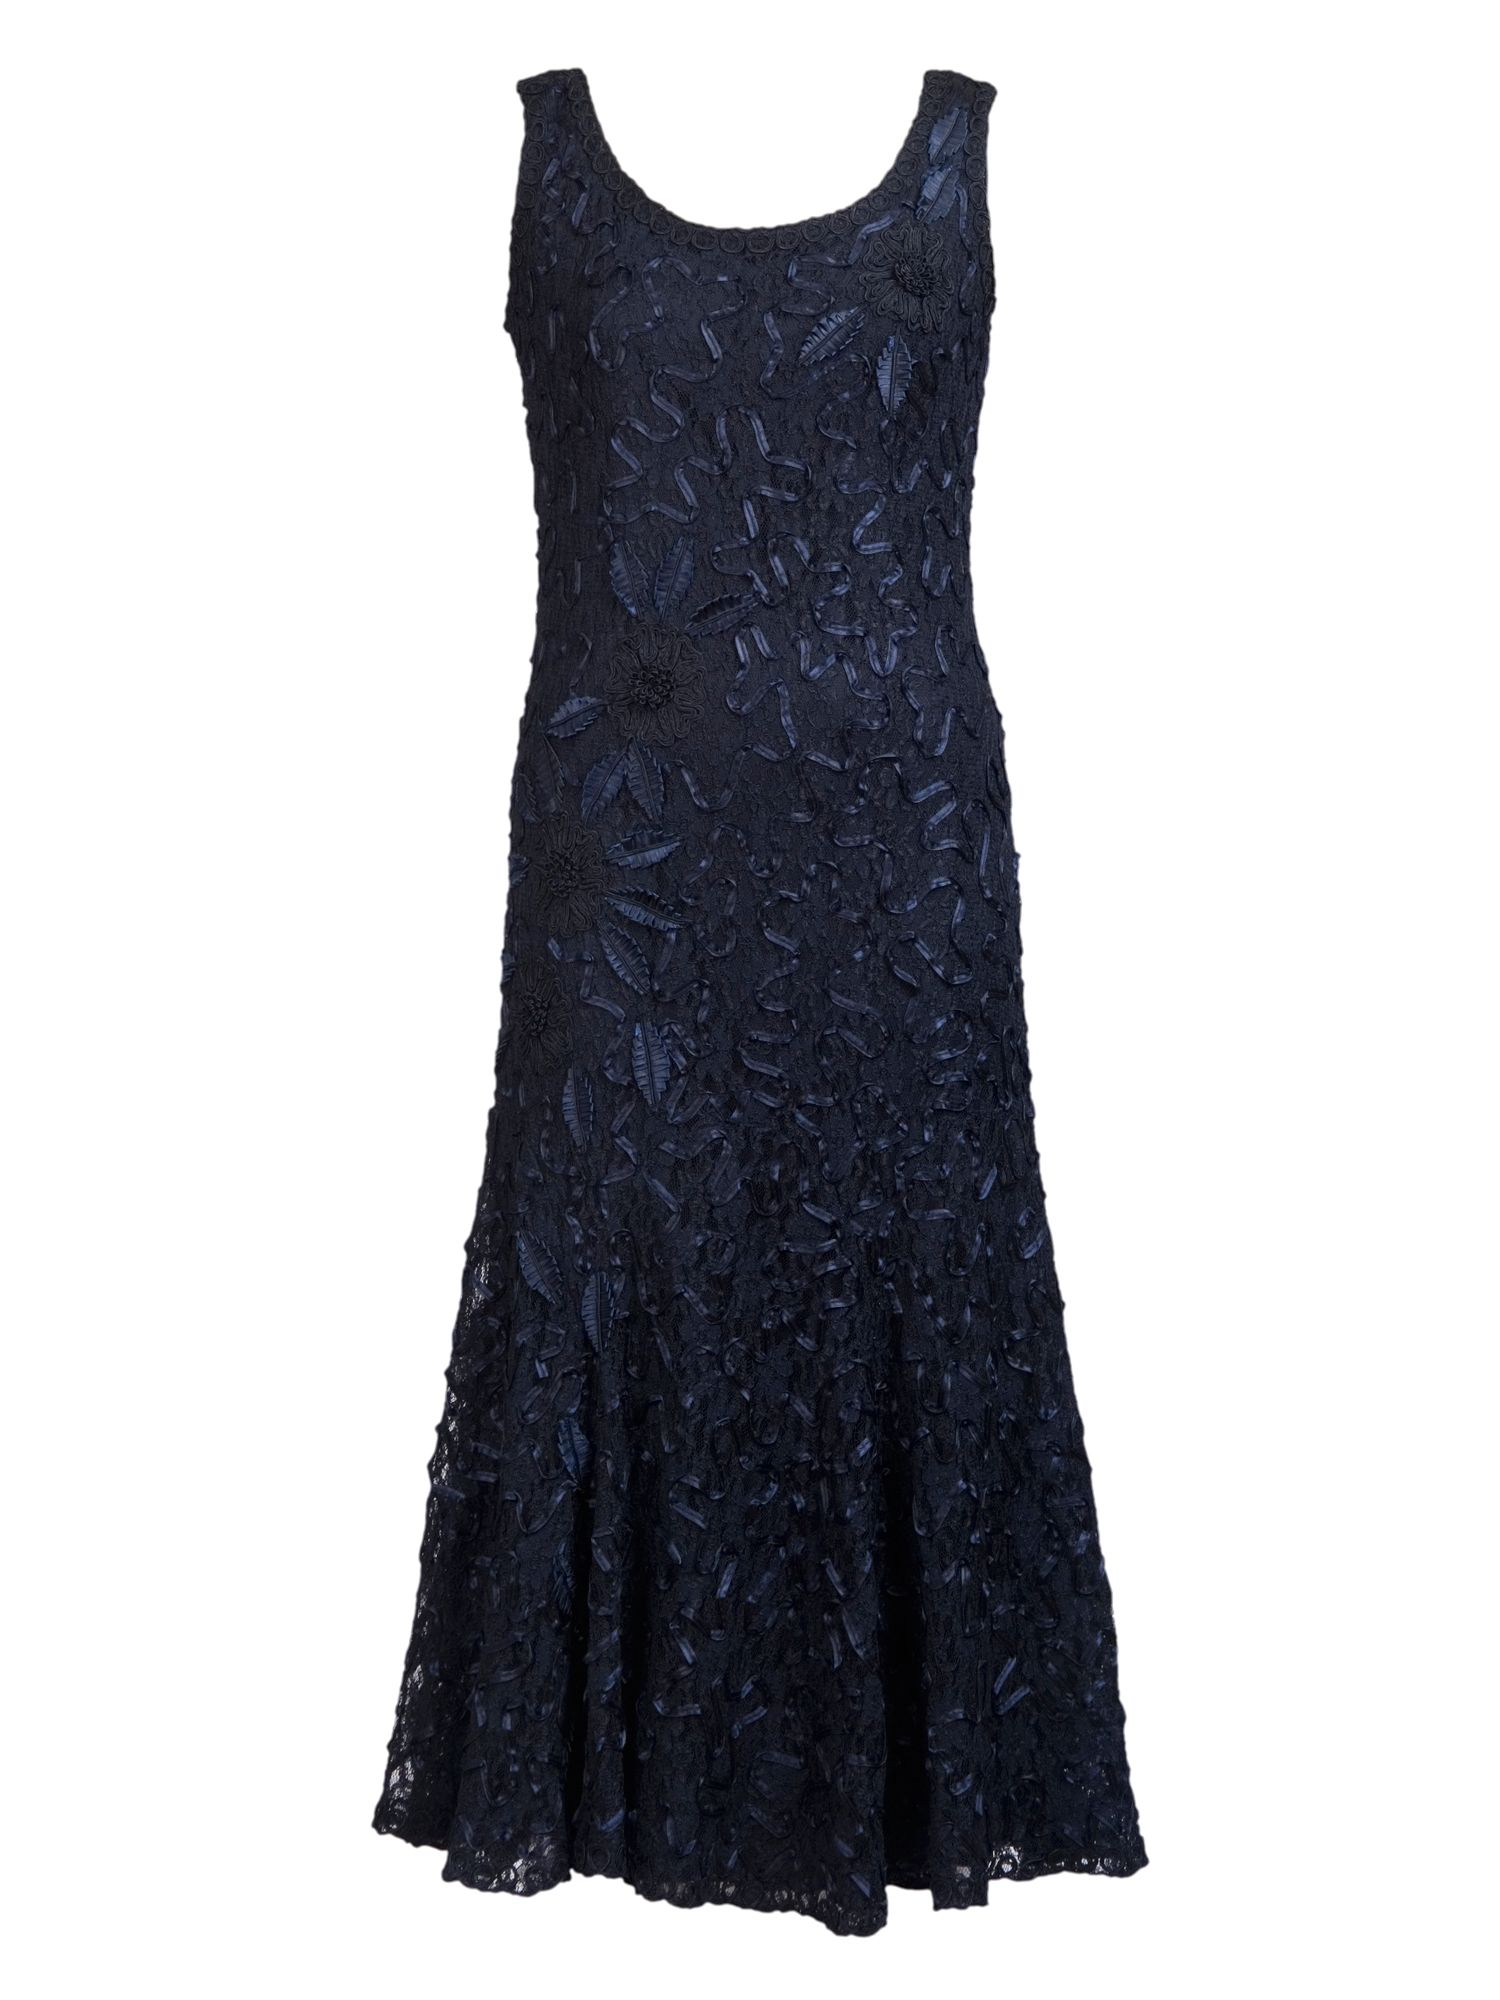 Chesca Plus Size Navy Lace Cornelli Dress, Blue